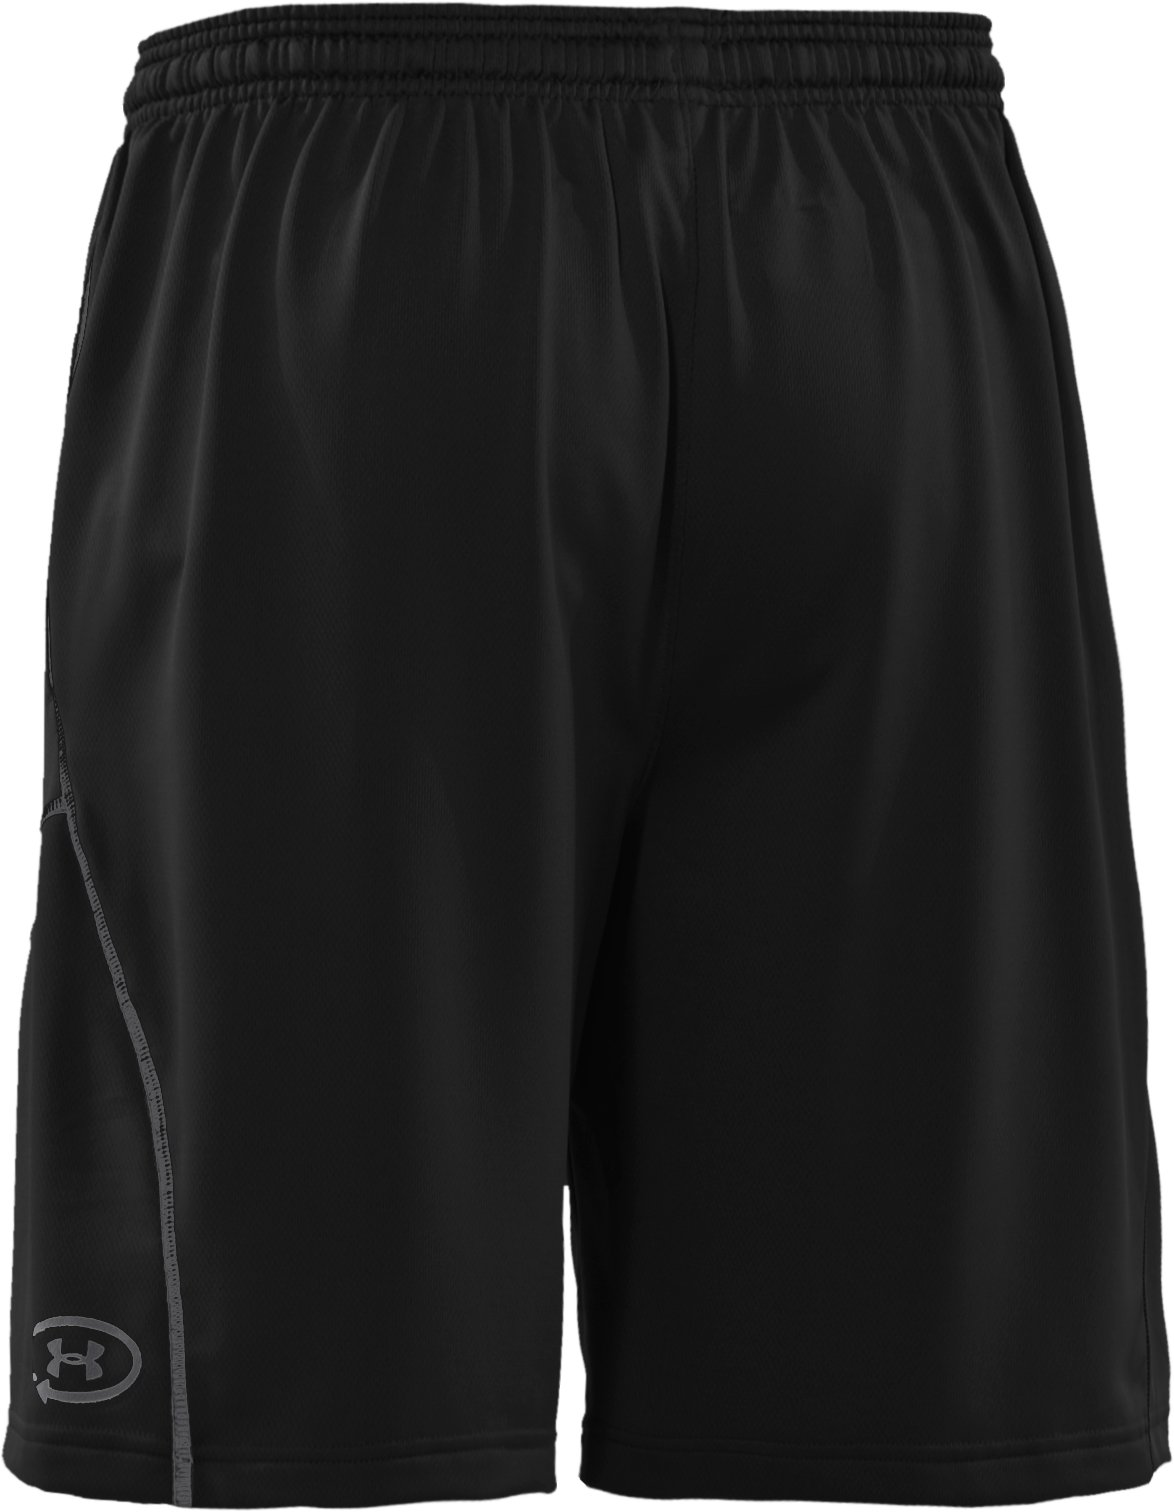 Men's UA Catalyst Shorts, Black